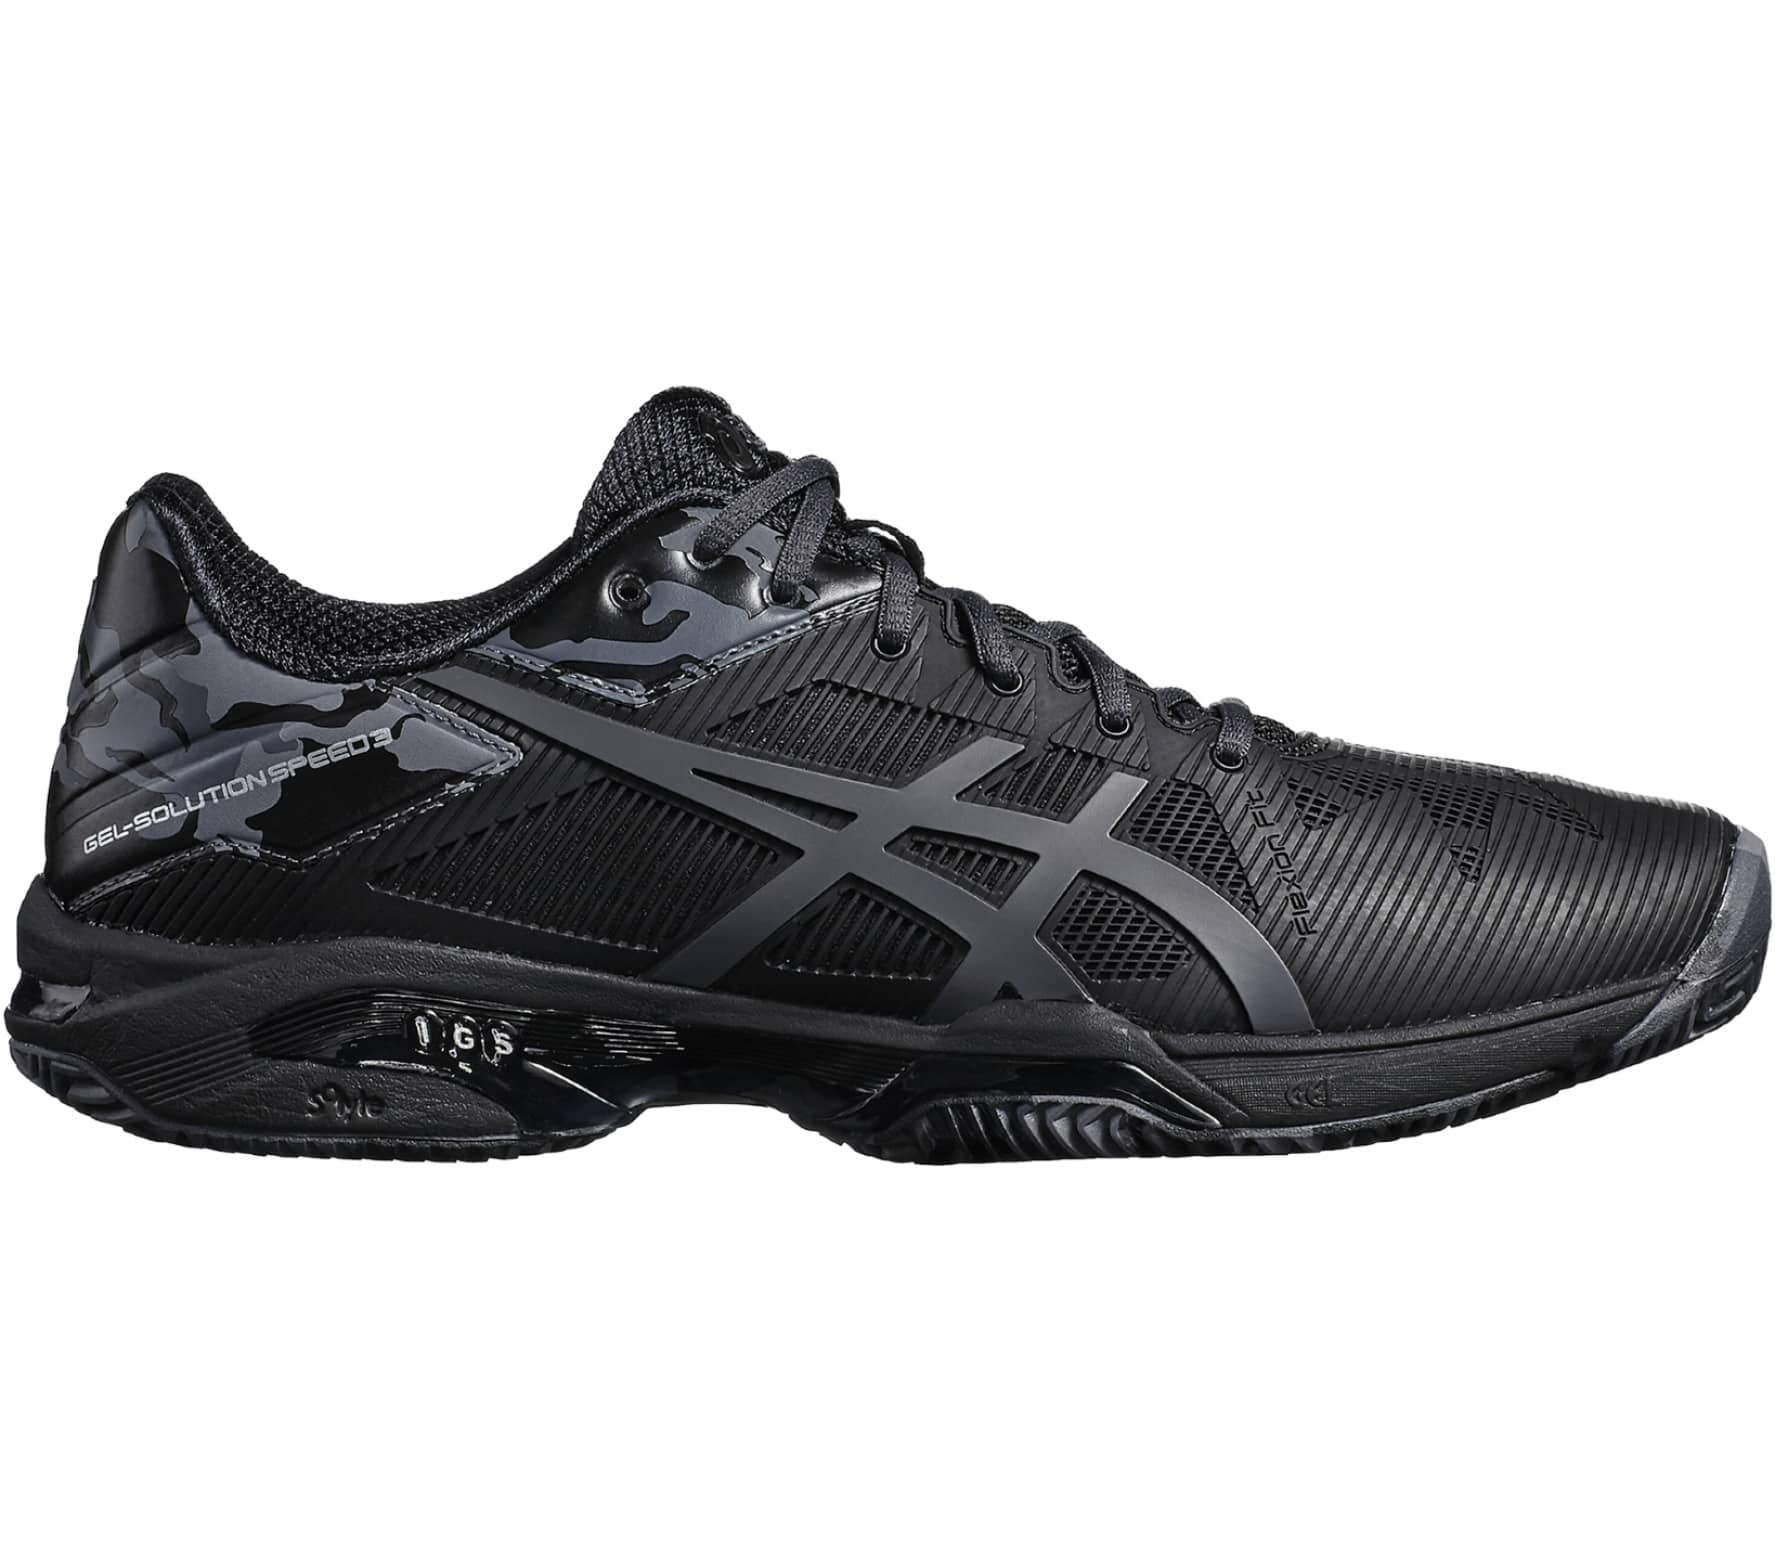 24cfec07a95 ASICS - Gel-Solution Speed 3 Clay L.E. men s tennis shoes (black ...